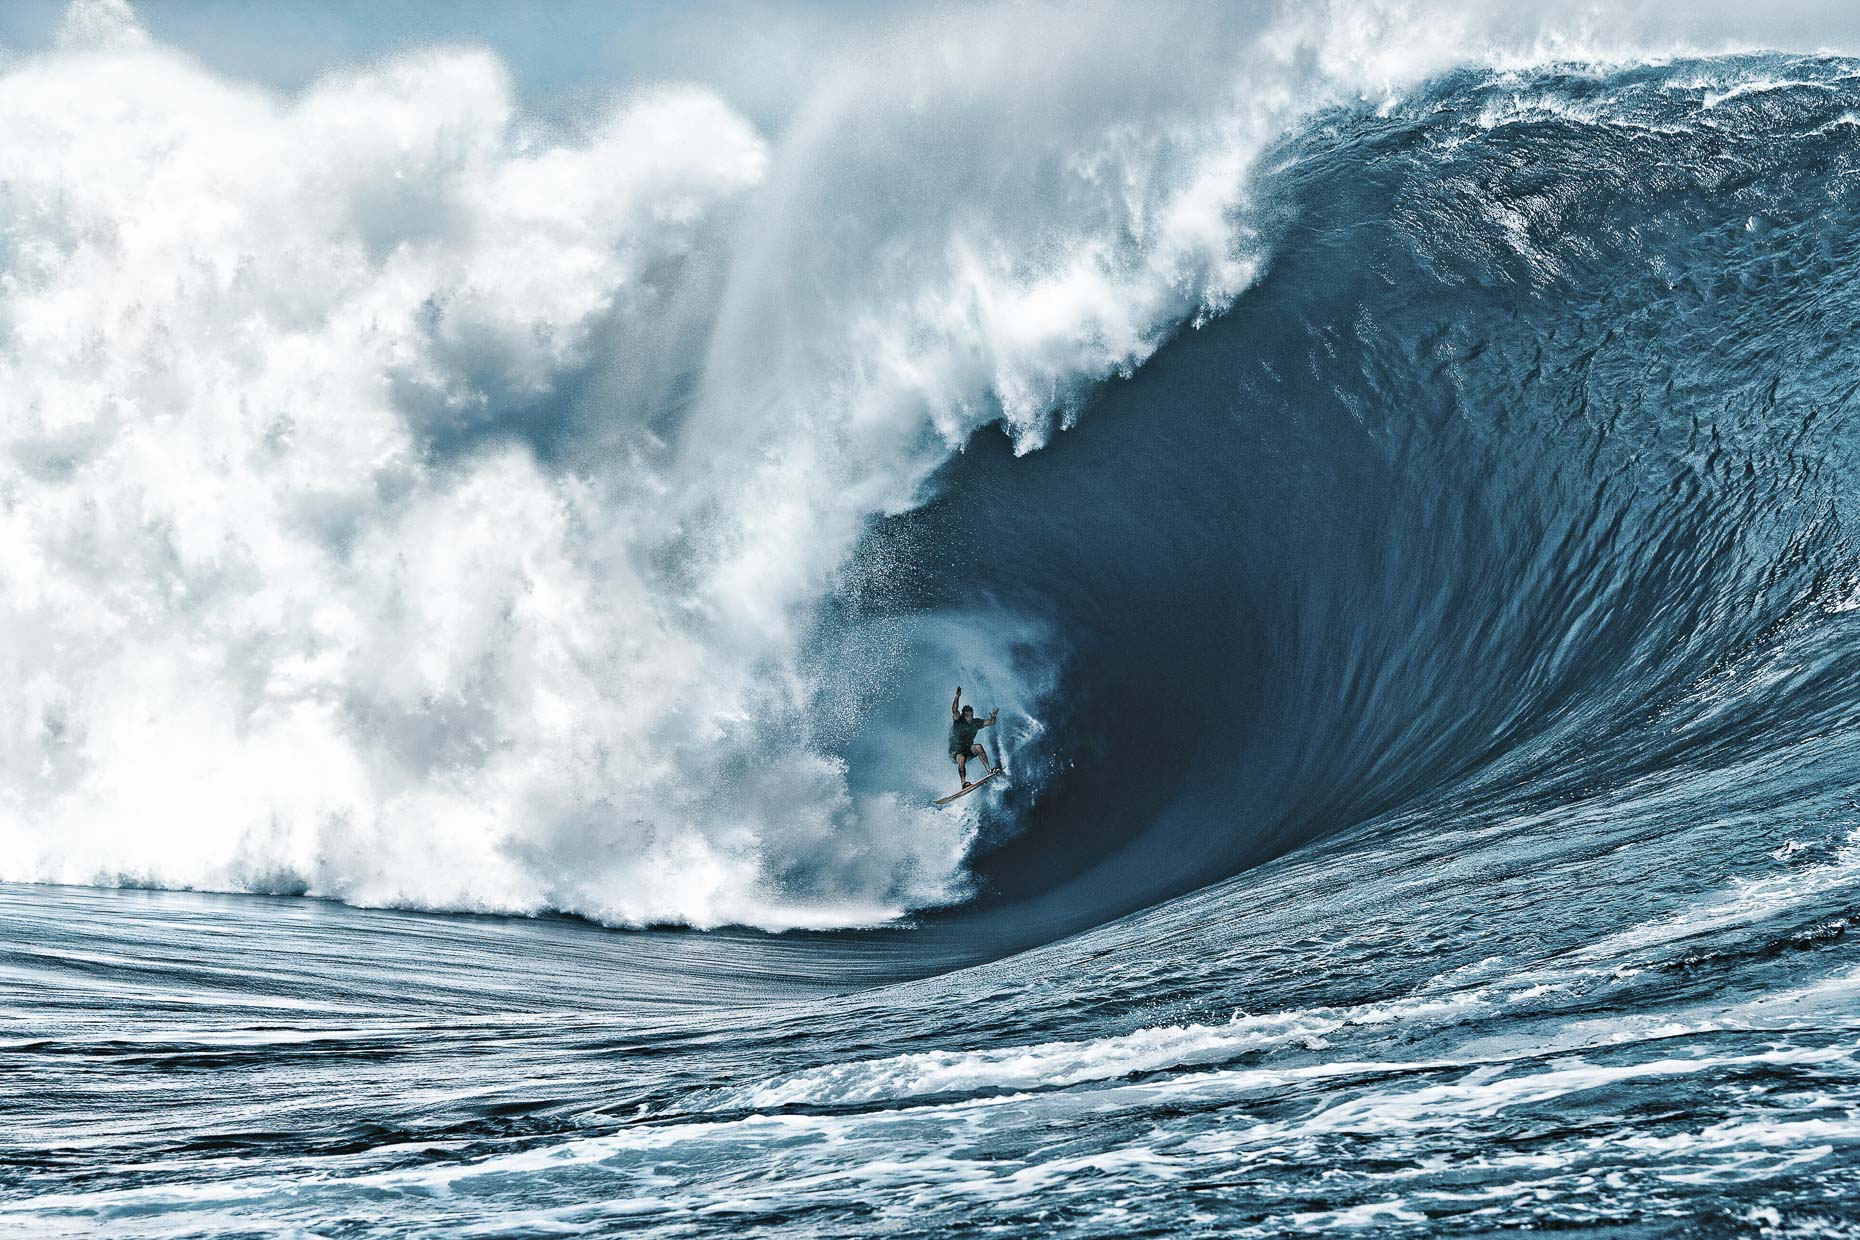 How Photographer Tom Servais Captured One of the Best Cloudbreak Images of All Time